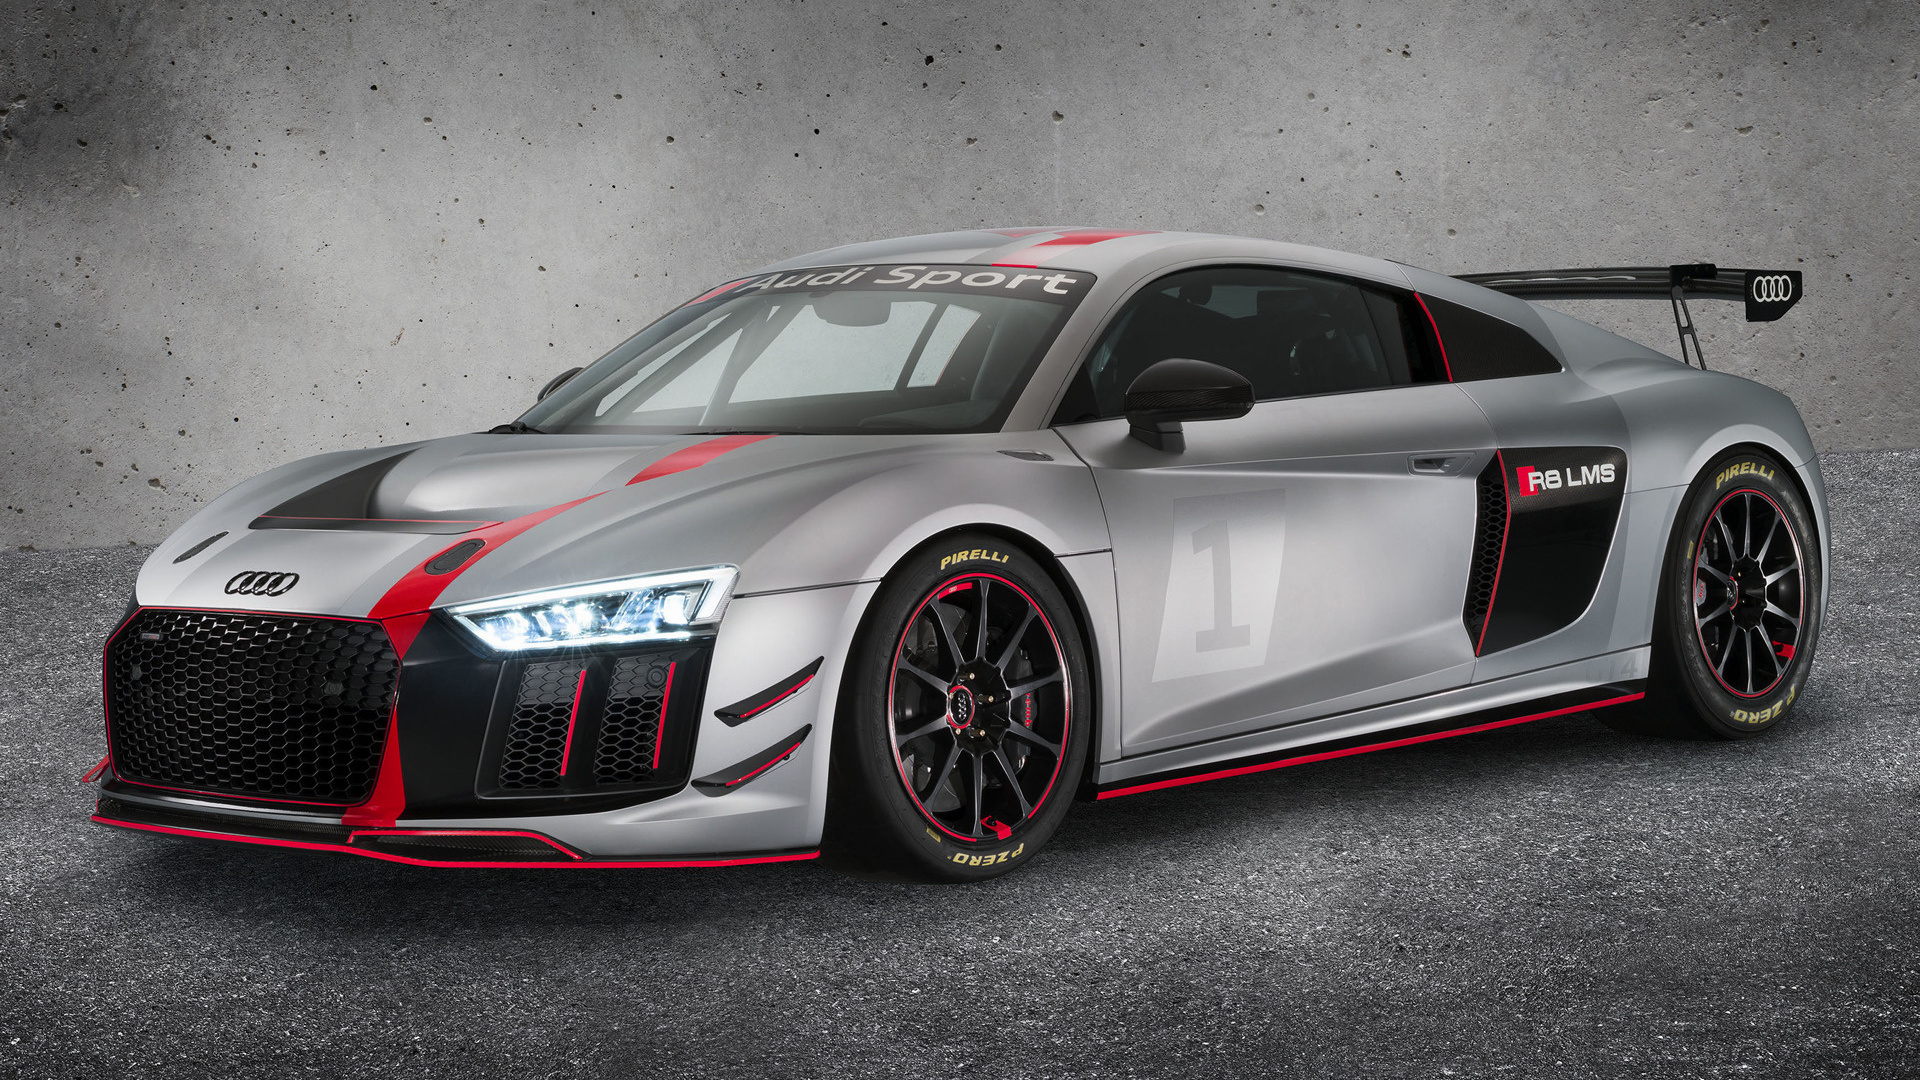 2017 Audi R8 Lms Gt4 Wallpapers And Hd Images Car Pixel